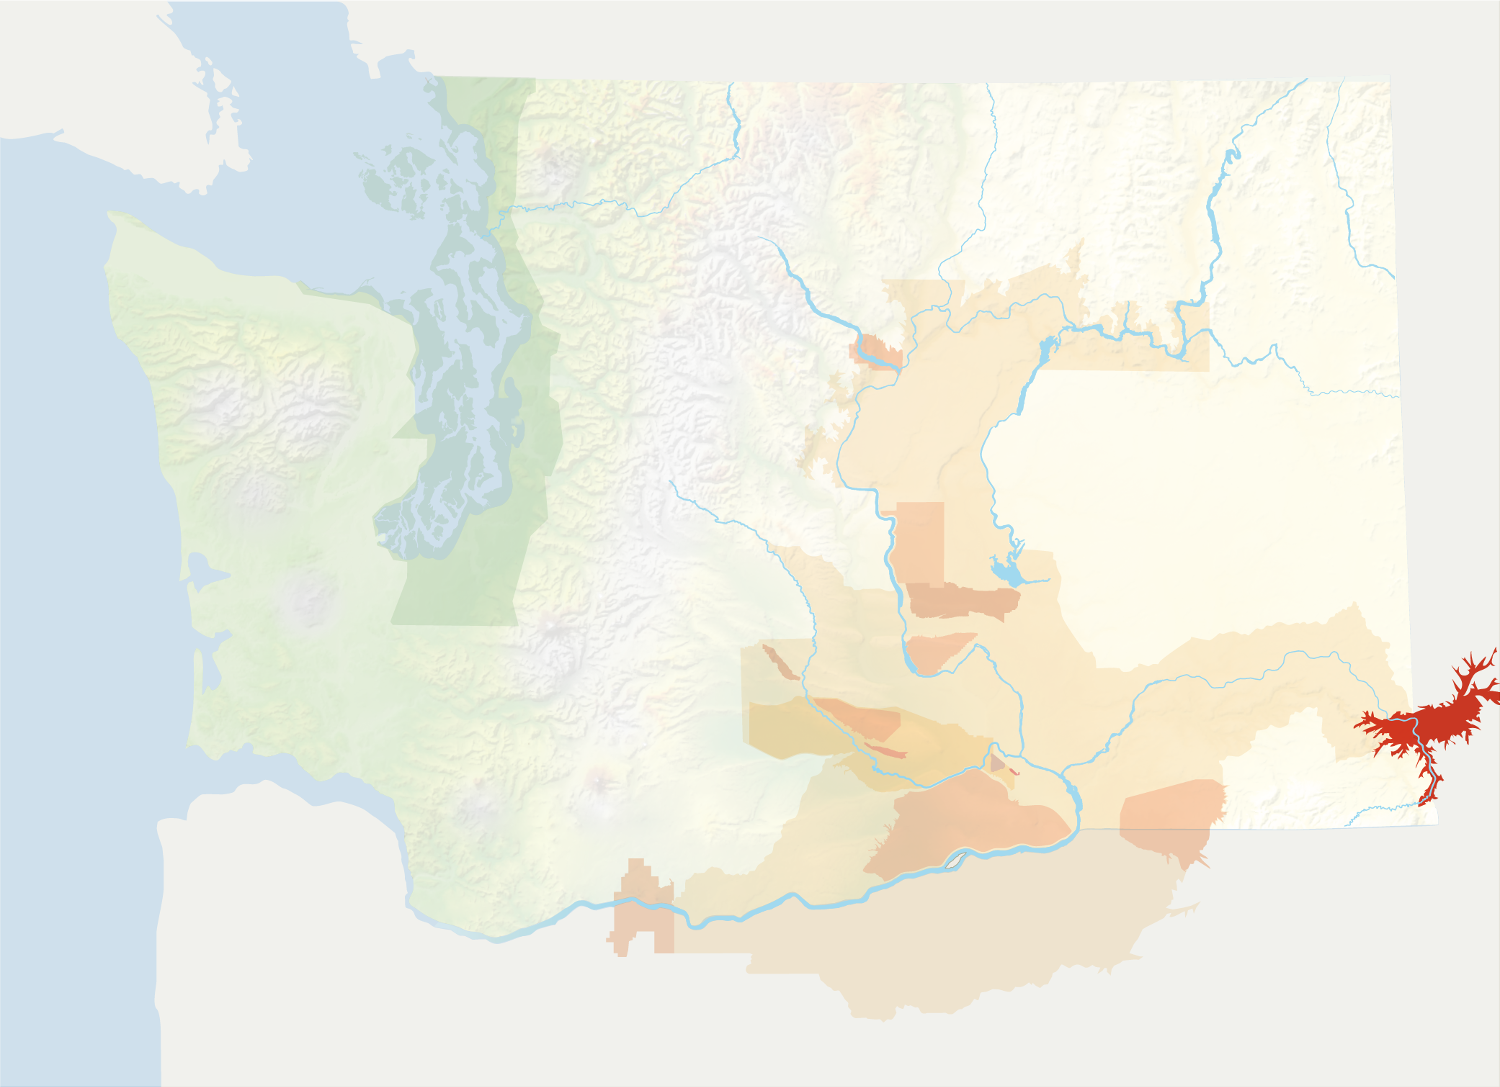 Map of Washington with the Lewis-Clark Valley AVA in red, surrounded by the rest of the AVAs in muted greens and oranges.